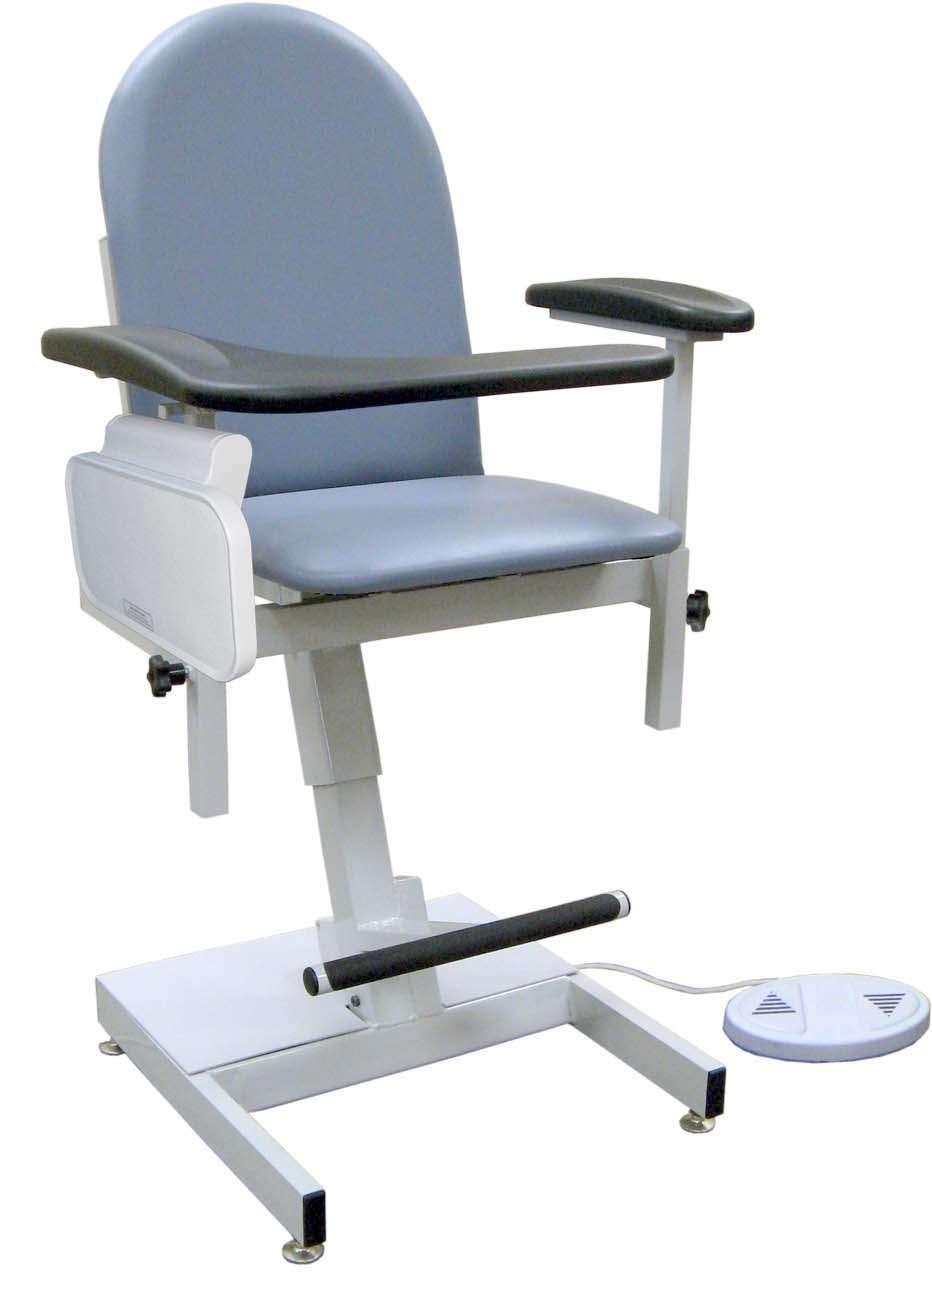 Power Designer Blood Drawing Chair - Padded vinyl